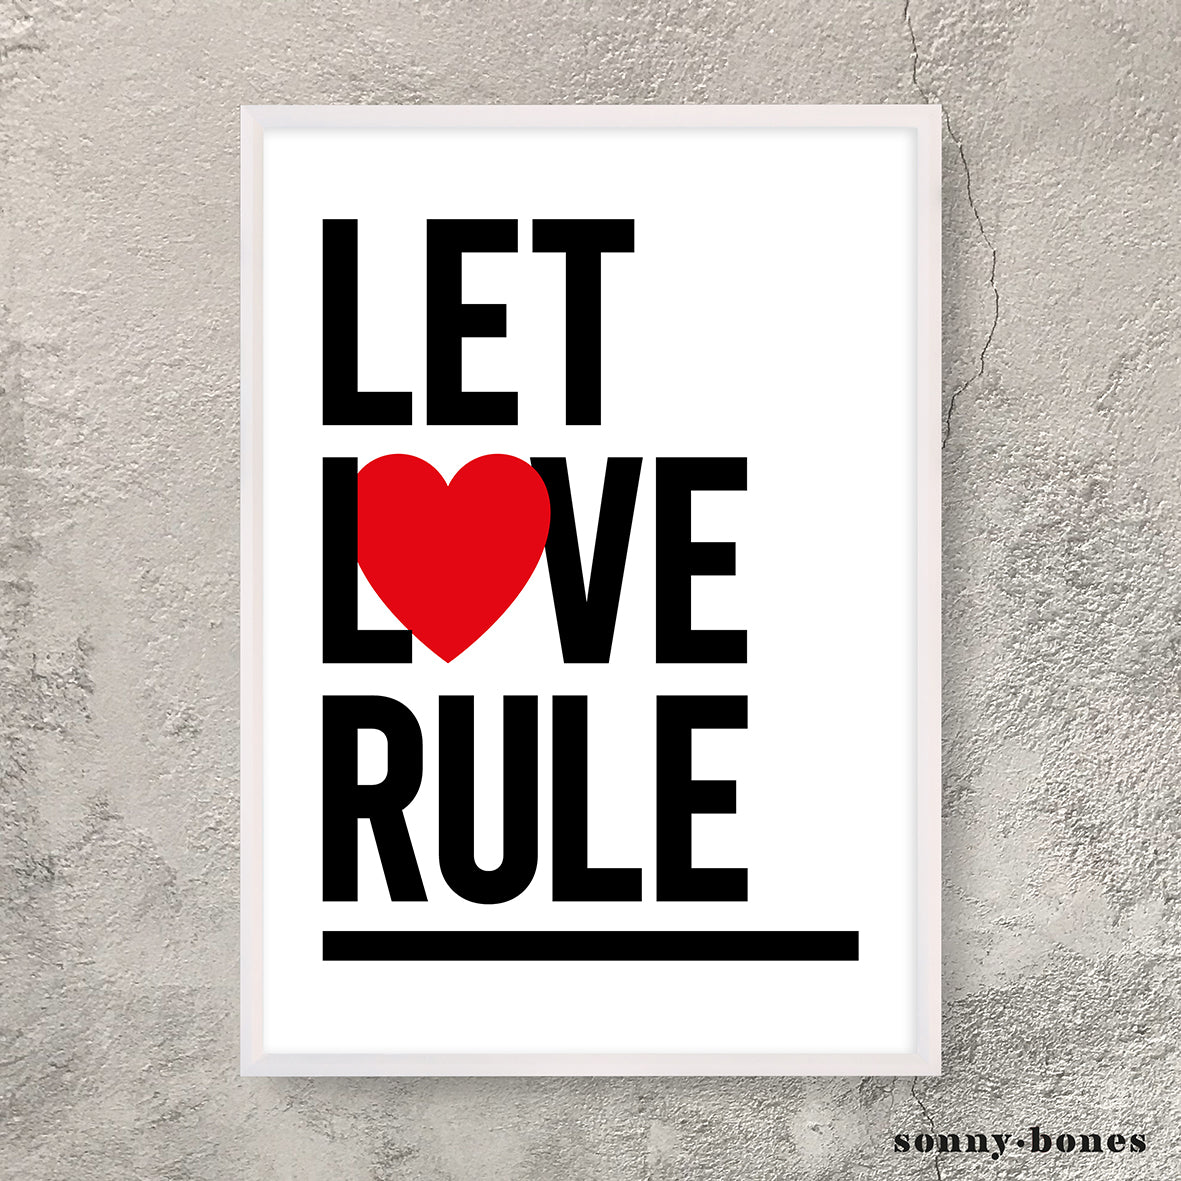 LET LOVE RULE (white/black)